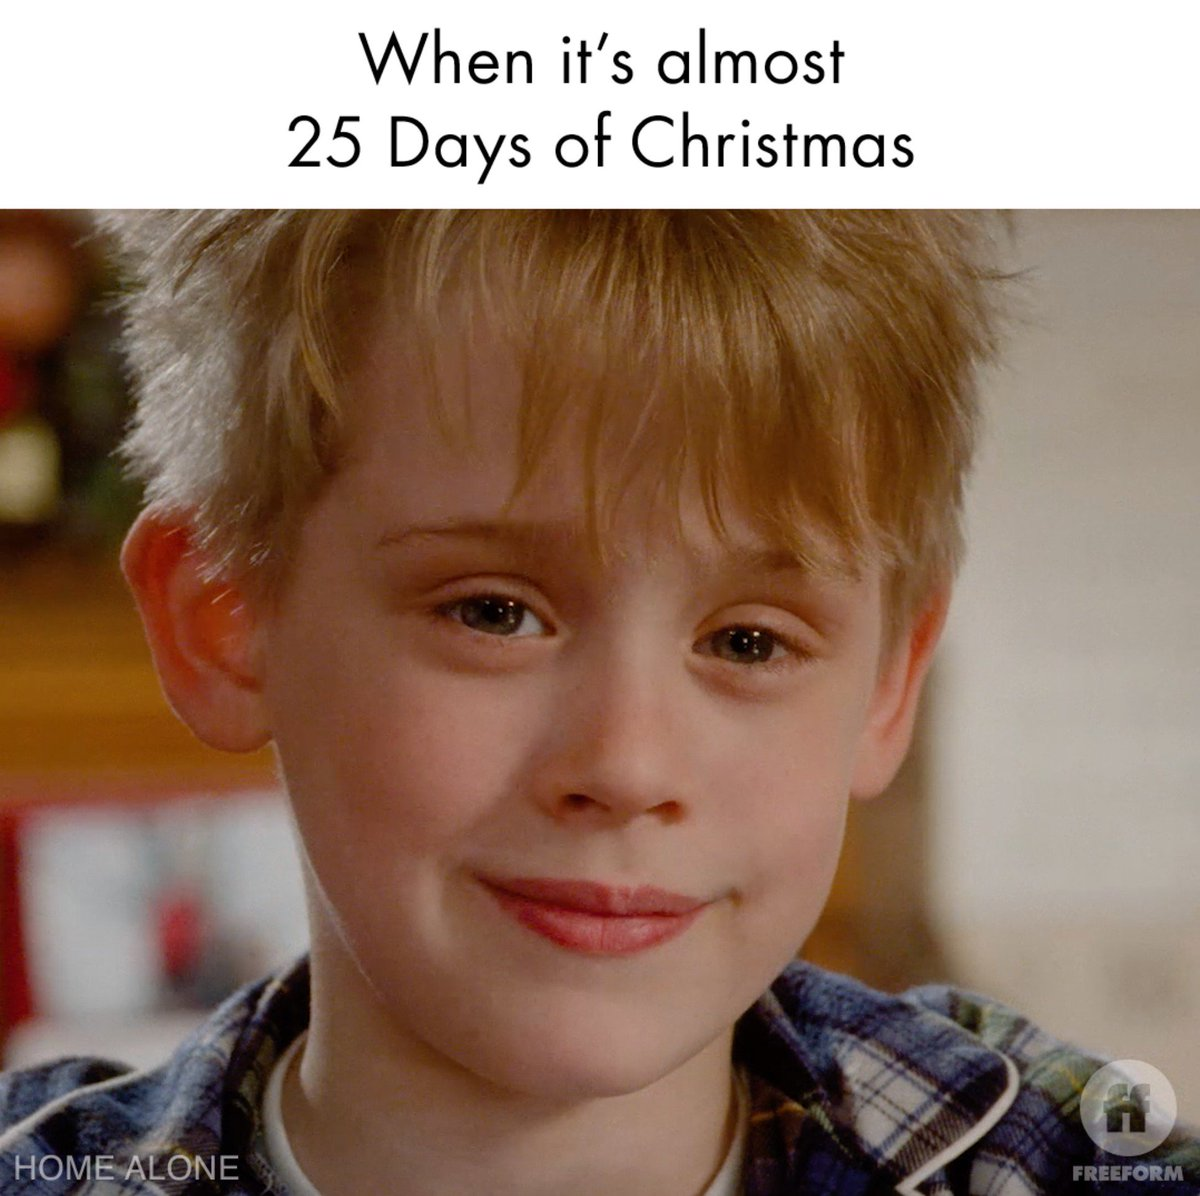 Get ready for full Christmas mode.   ❤️ this tweet to get a reminder to watch #25DaysOfChristmas on December 1 on @FreeformTV.